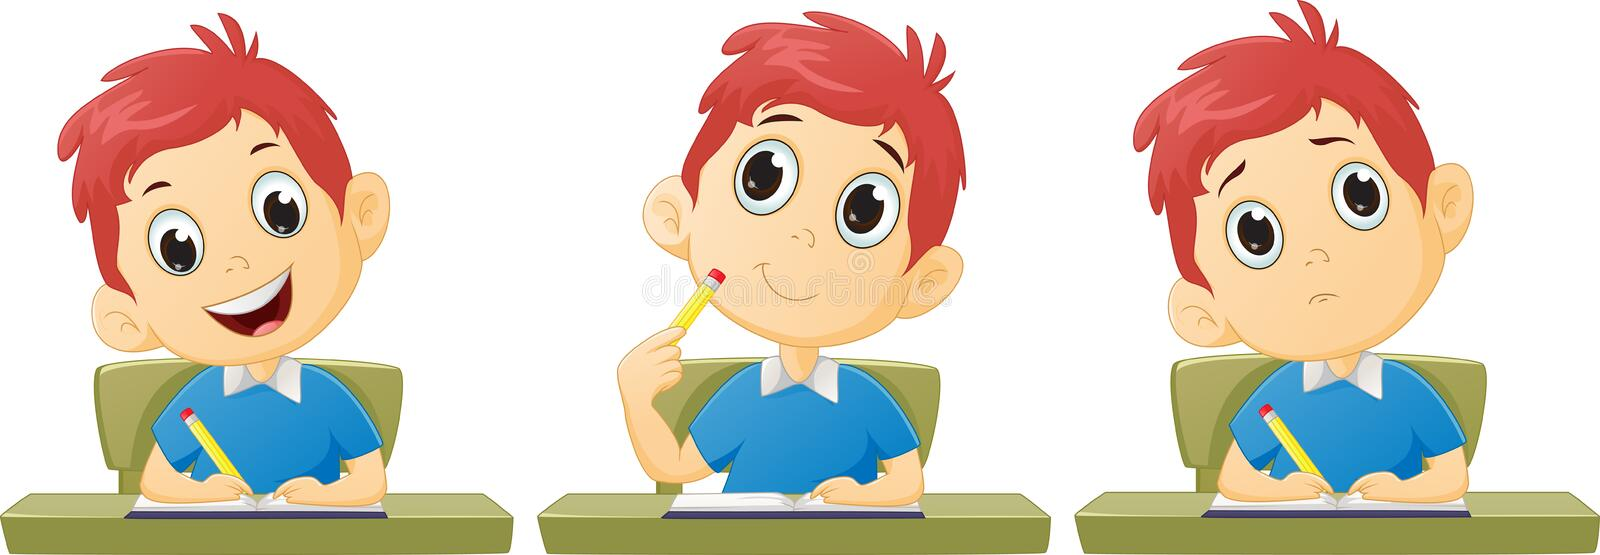 Cartoon boy studying stock illustration